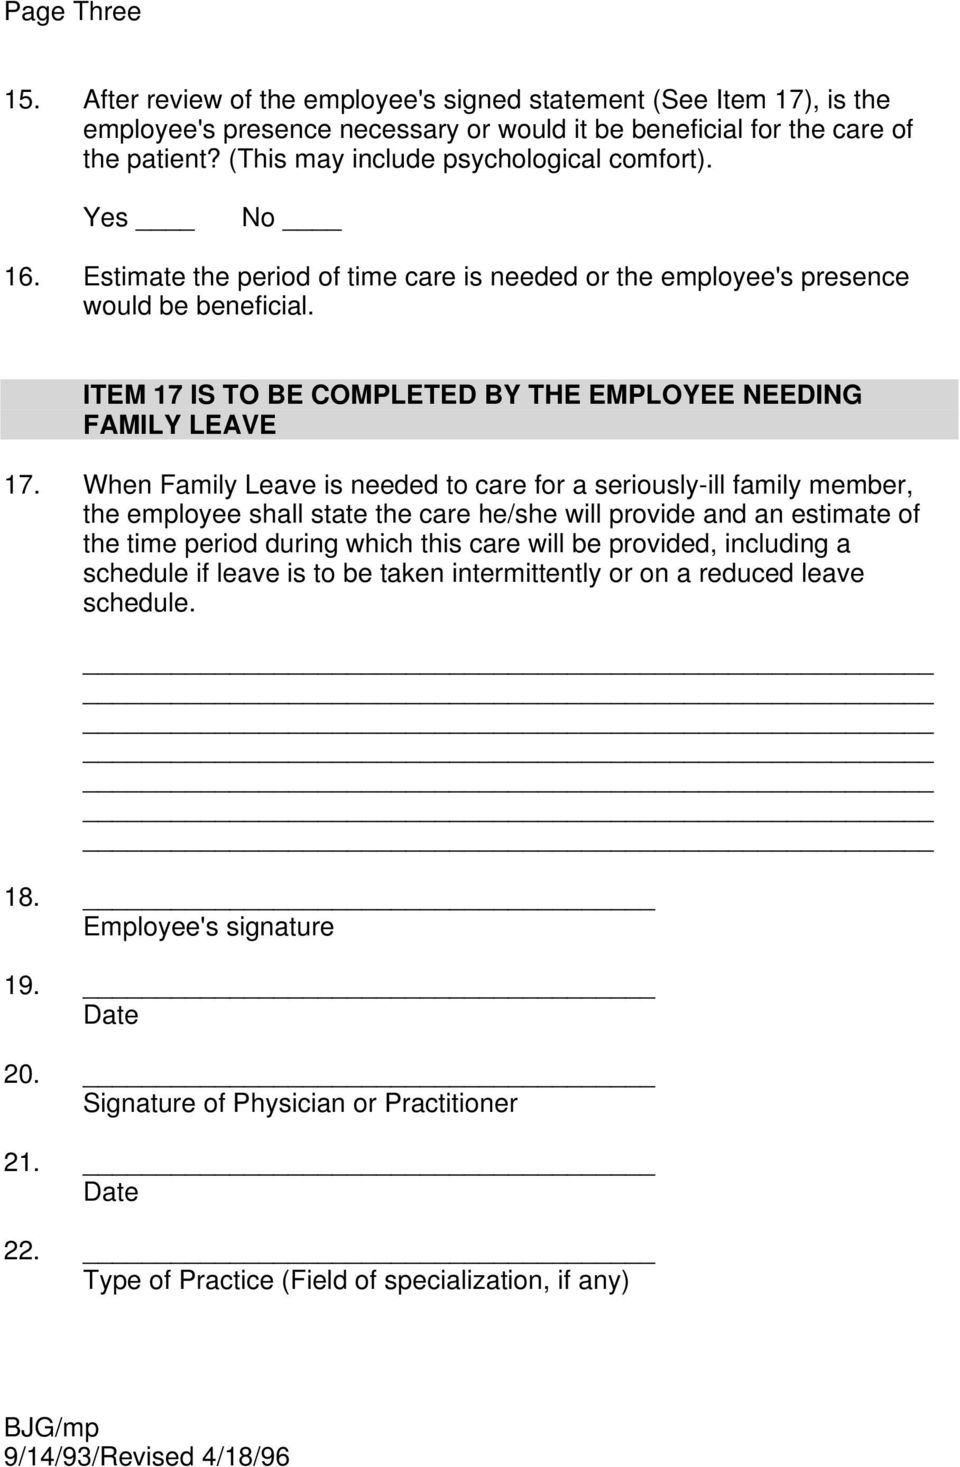 ITEM 17 IS TO BE COMPLETED BY THE EMPLOYEE NEEDING FAMILY LEAVE 17.